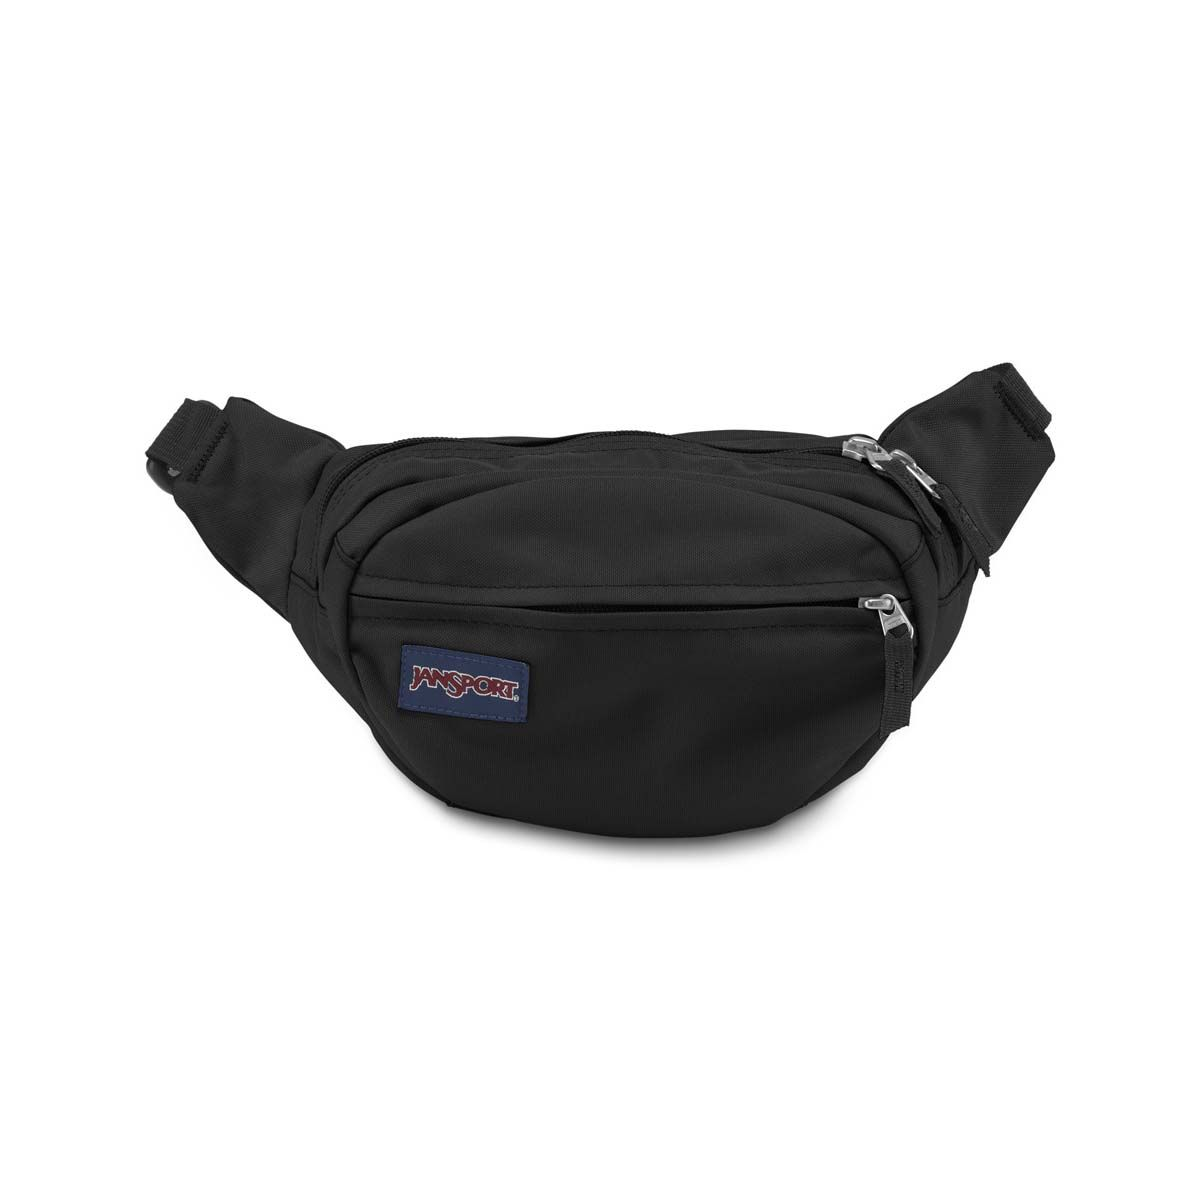 JanSport Fifth Ave Fanny Pack in Black